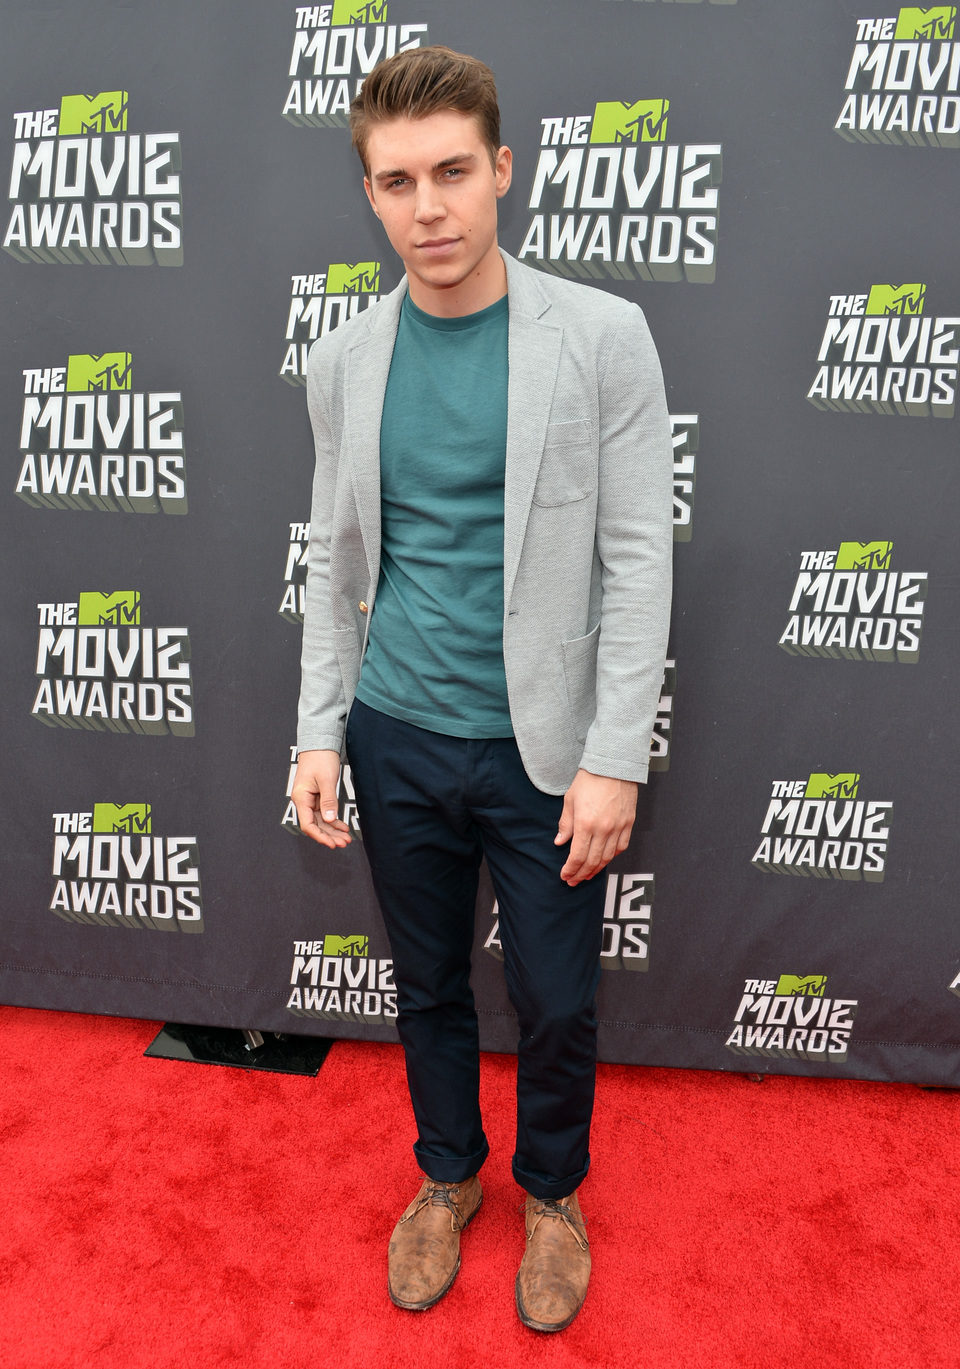 Nolan Funk en la alfombra roja de la entrega de los MTV Movie Awards 2013